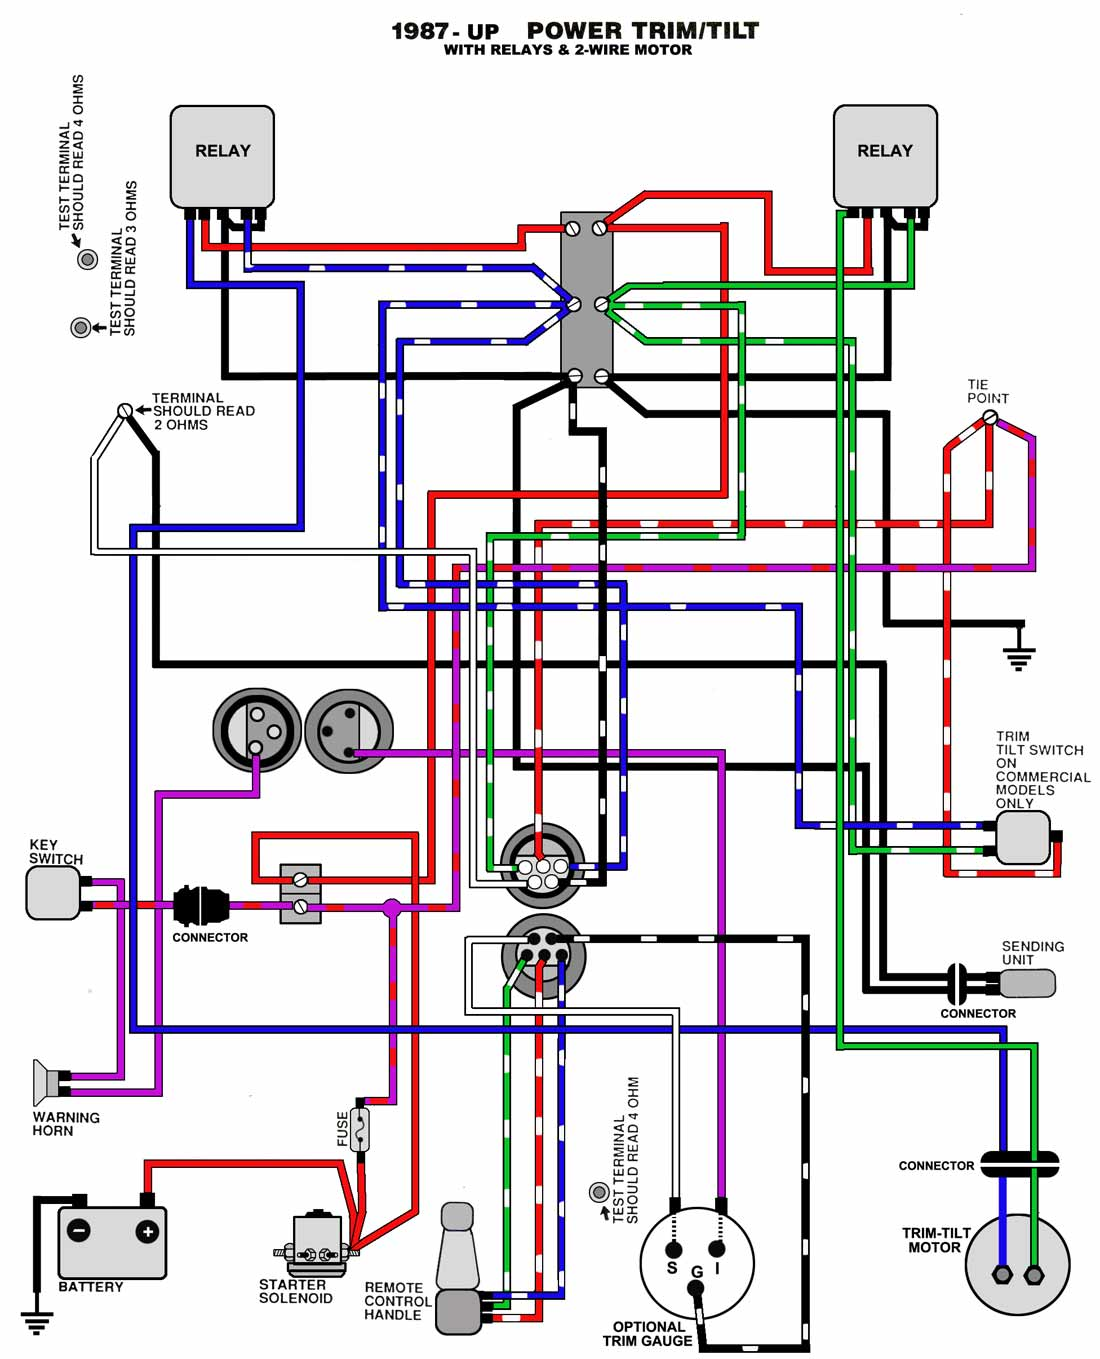 TnT_87_UP?resize=680%2C840 1969 johnson outboard wiring diagram 1969 johnson 55 hp outboard 1969 evinrude 55 hp wiring diagram at soozxer.org